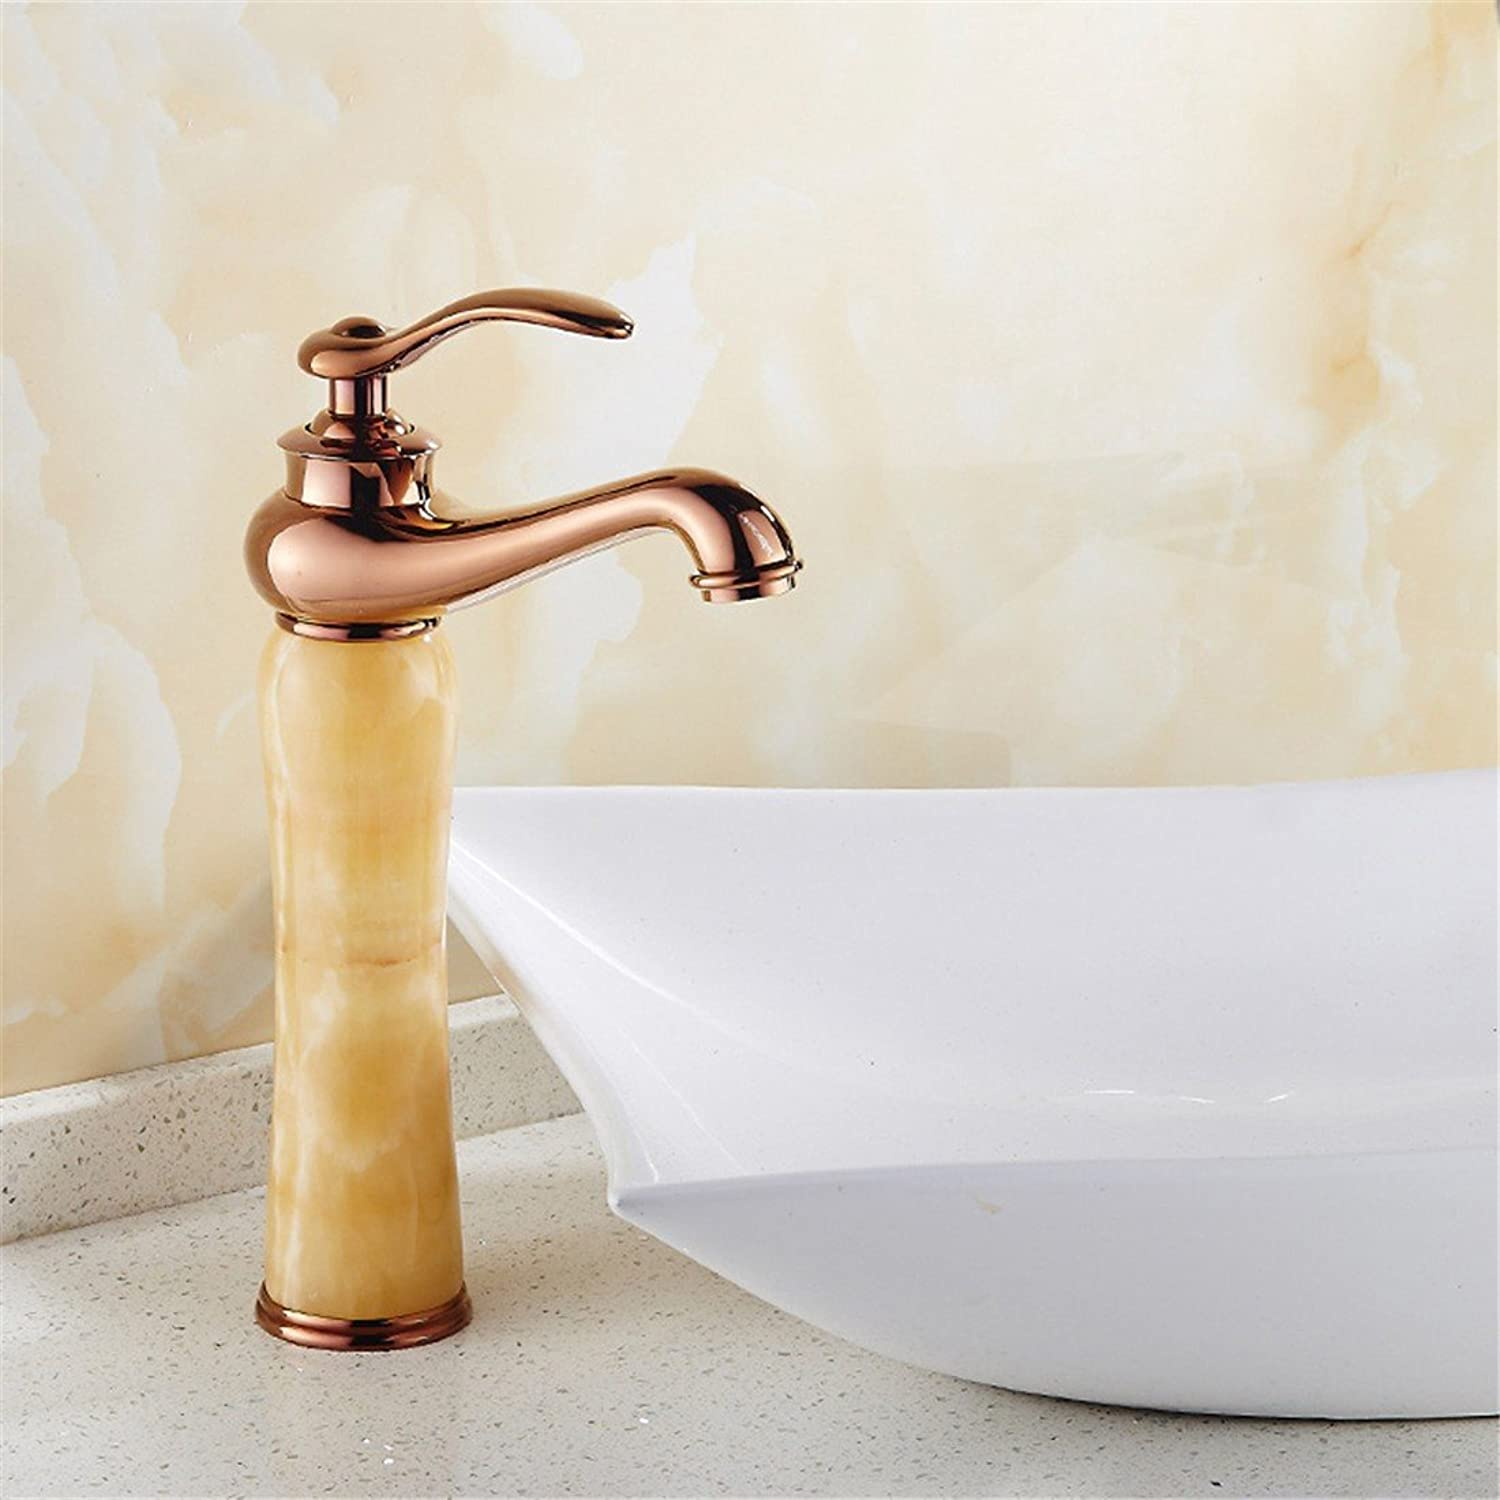 Hlluya Professional Sink Mixer Tap Kitchen Faucet Tap pink gold basin of hot and cold natural Green Jade Sinks Faucets full copper Washbasin Faucet, Wong Yuk